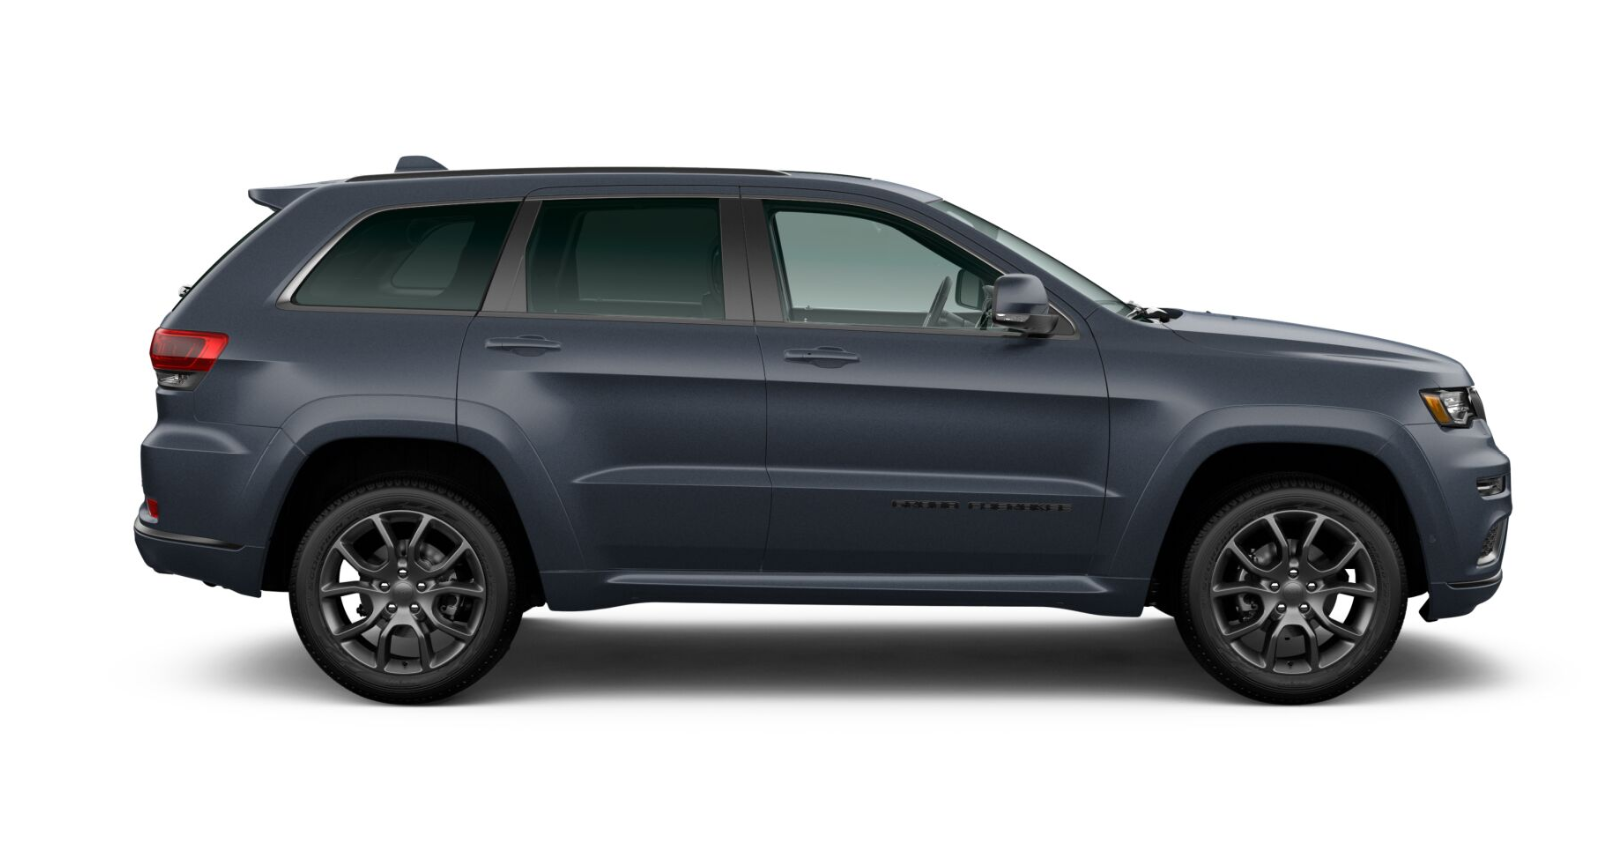 2020 Jeep Grand Cherokee High Altitude Side View Blue Exterior Picture